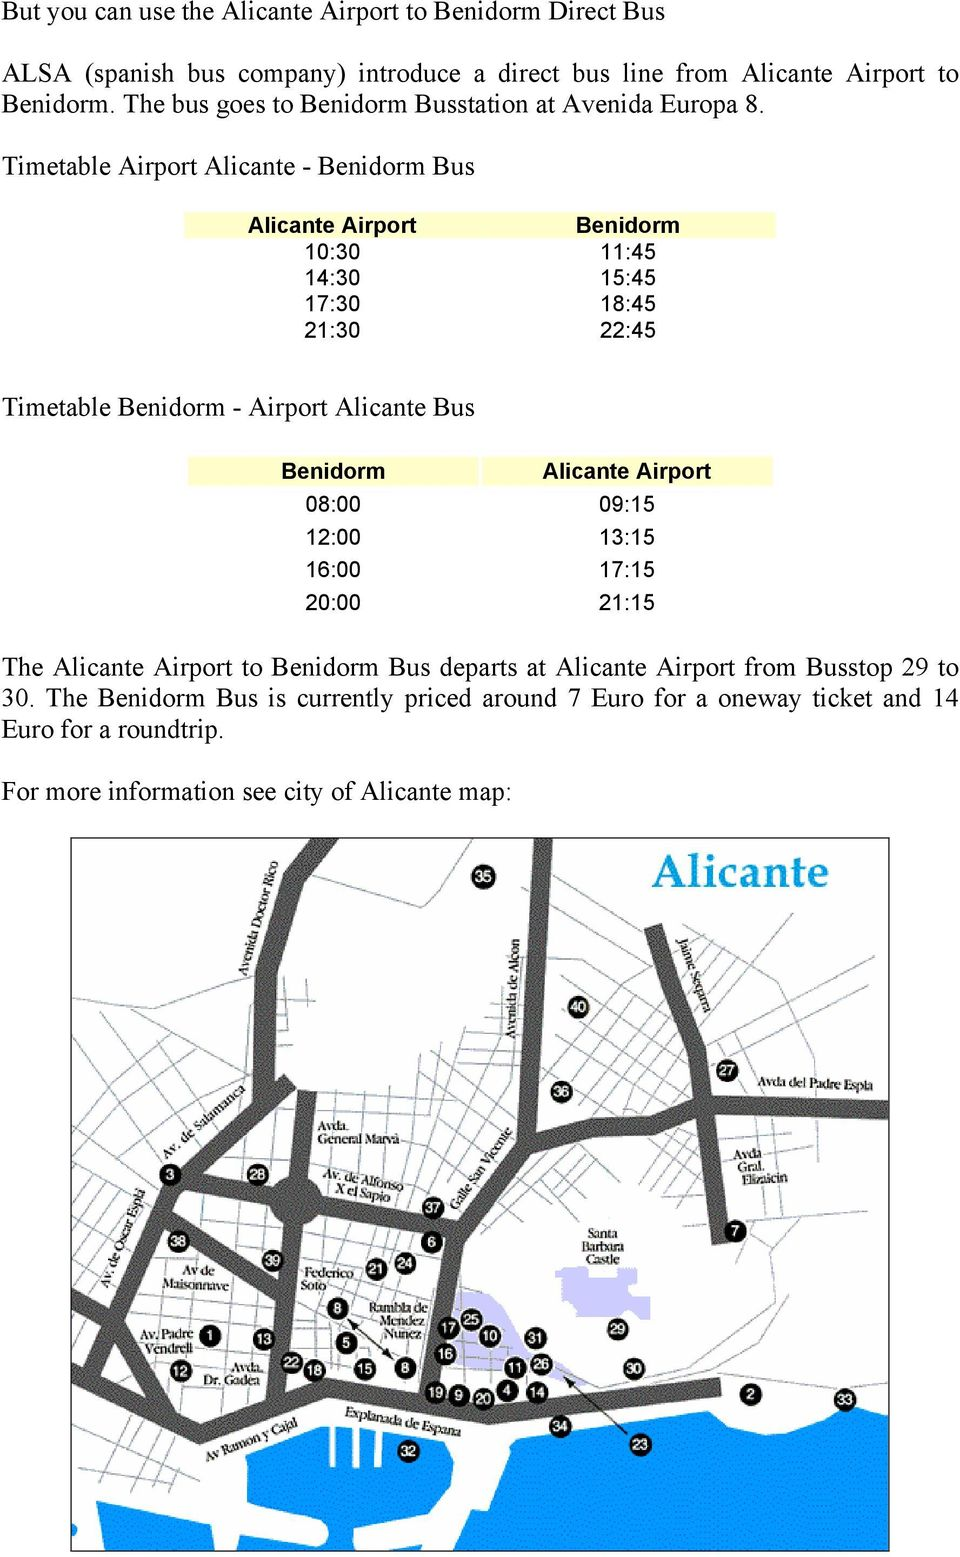 Timetable Airport Alicante - Benidorm Bus Alicante Airport Benidorm 10:30 11:45 14:30 15:45 17:30 18:45 21:30 22:45 Timetable Benidorm - Airport Alicante Bus Benidorm